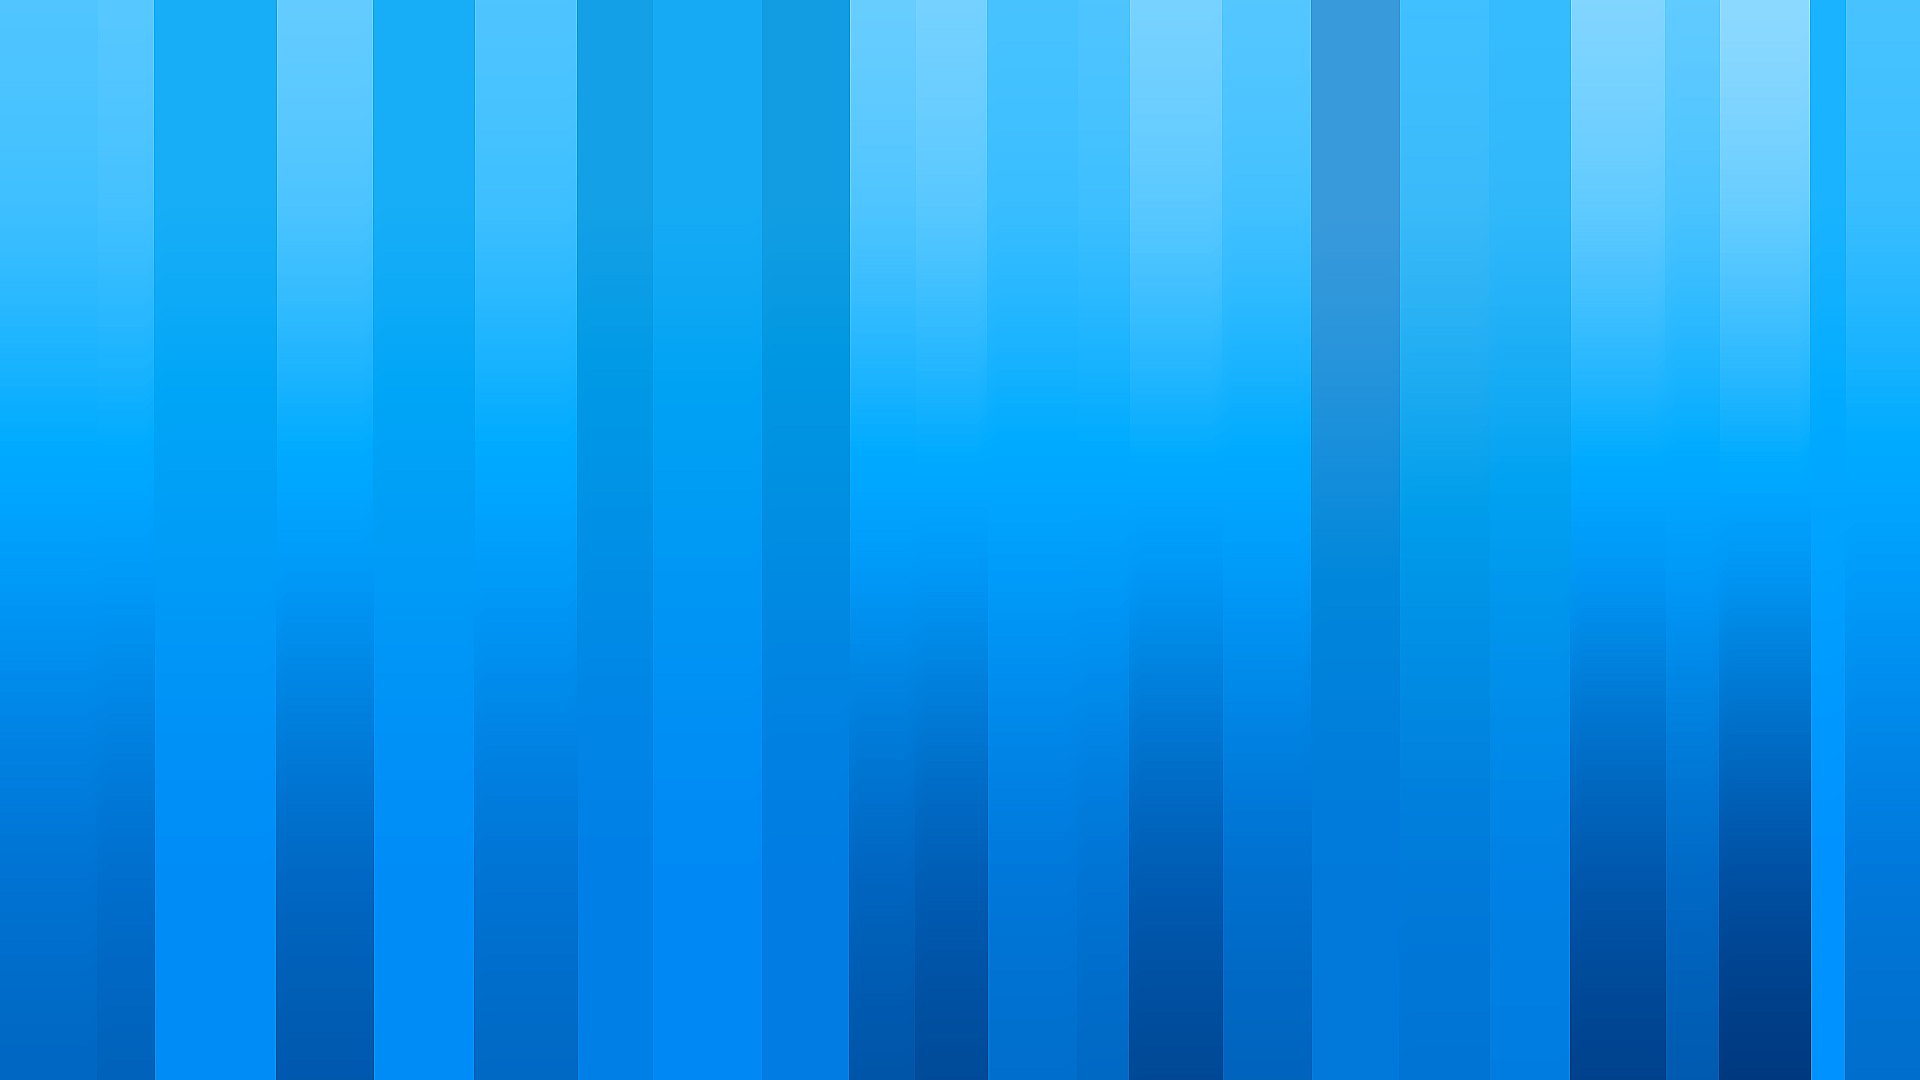 30 hd blue wallpapers backgrounds for free download for Designer blue wallpaper